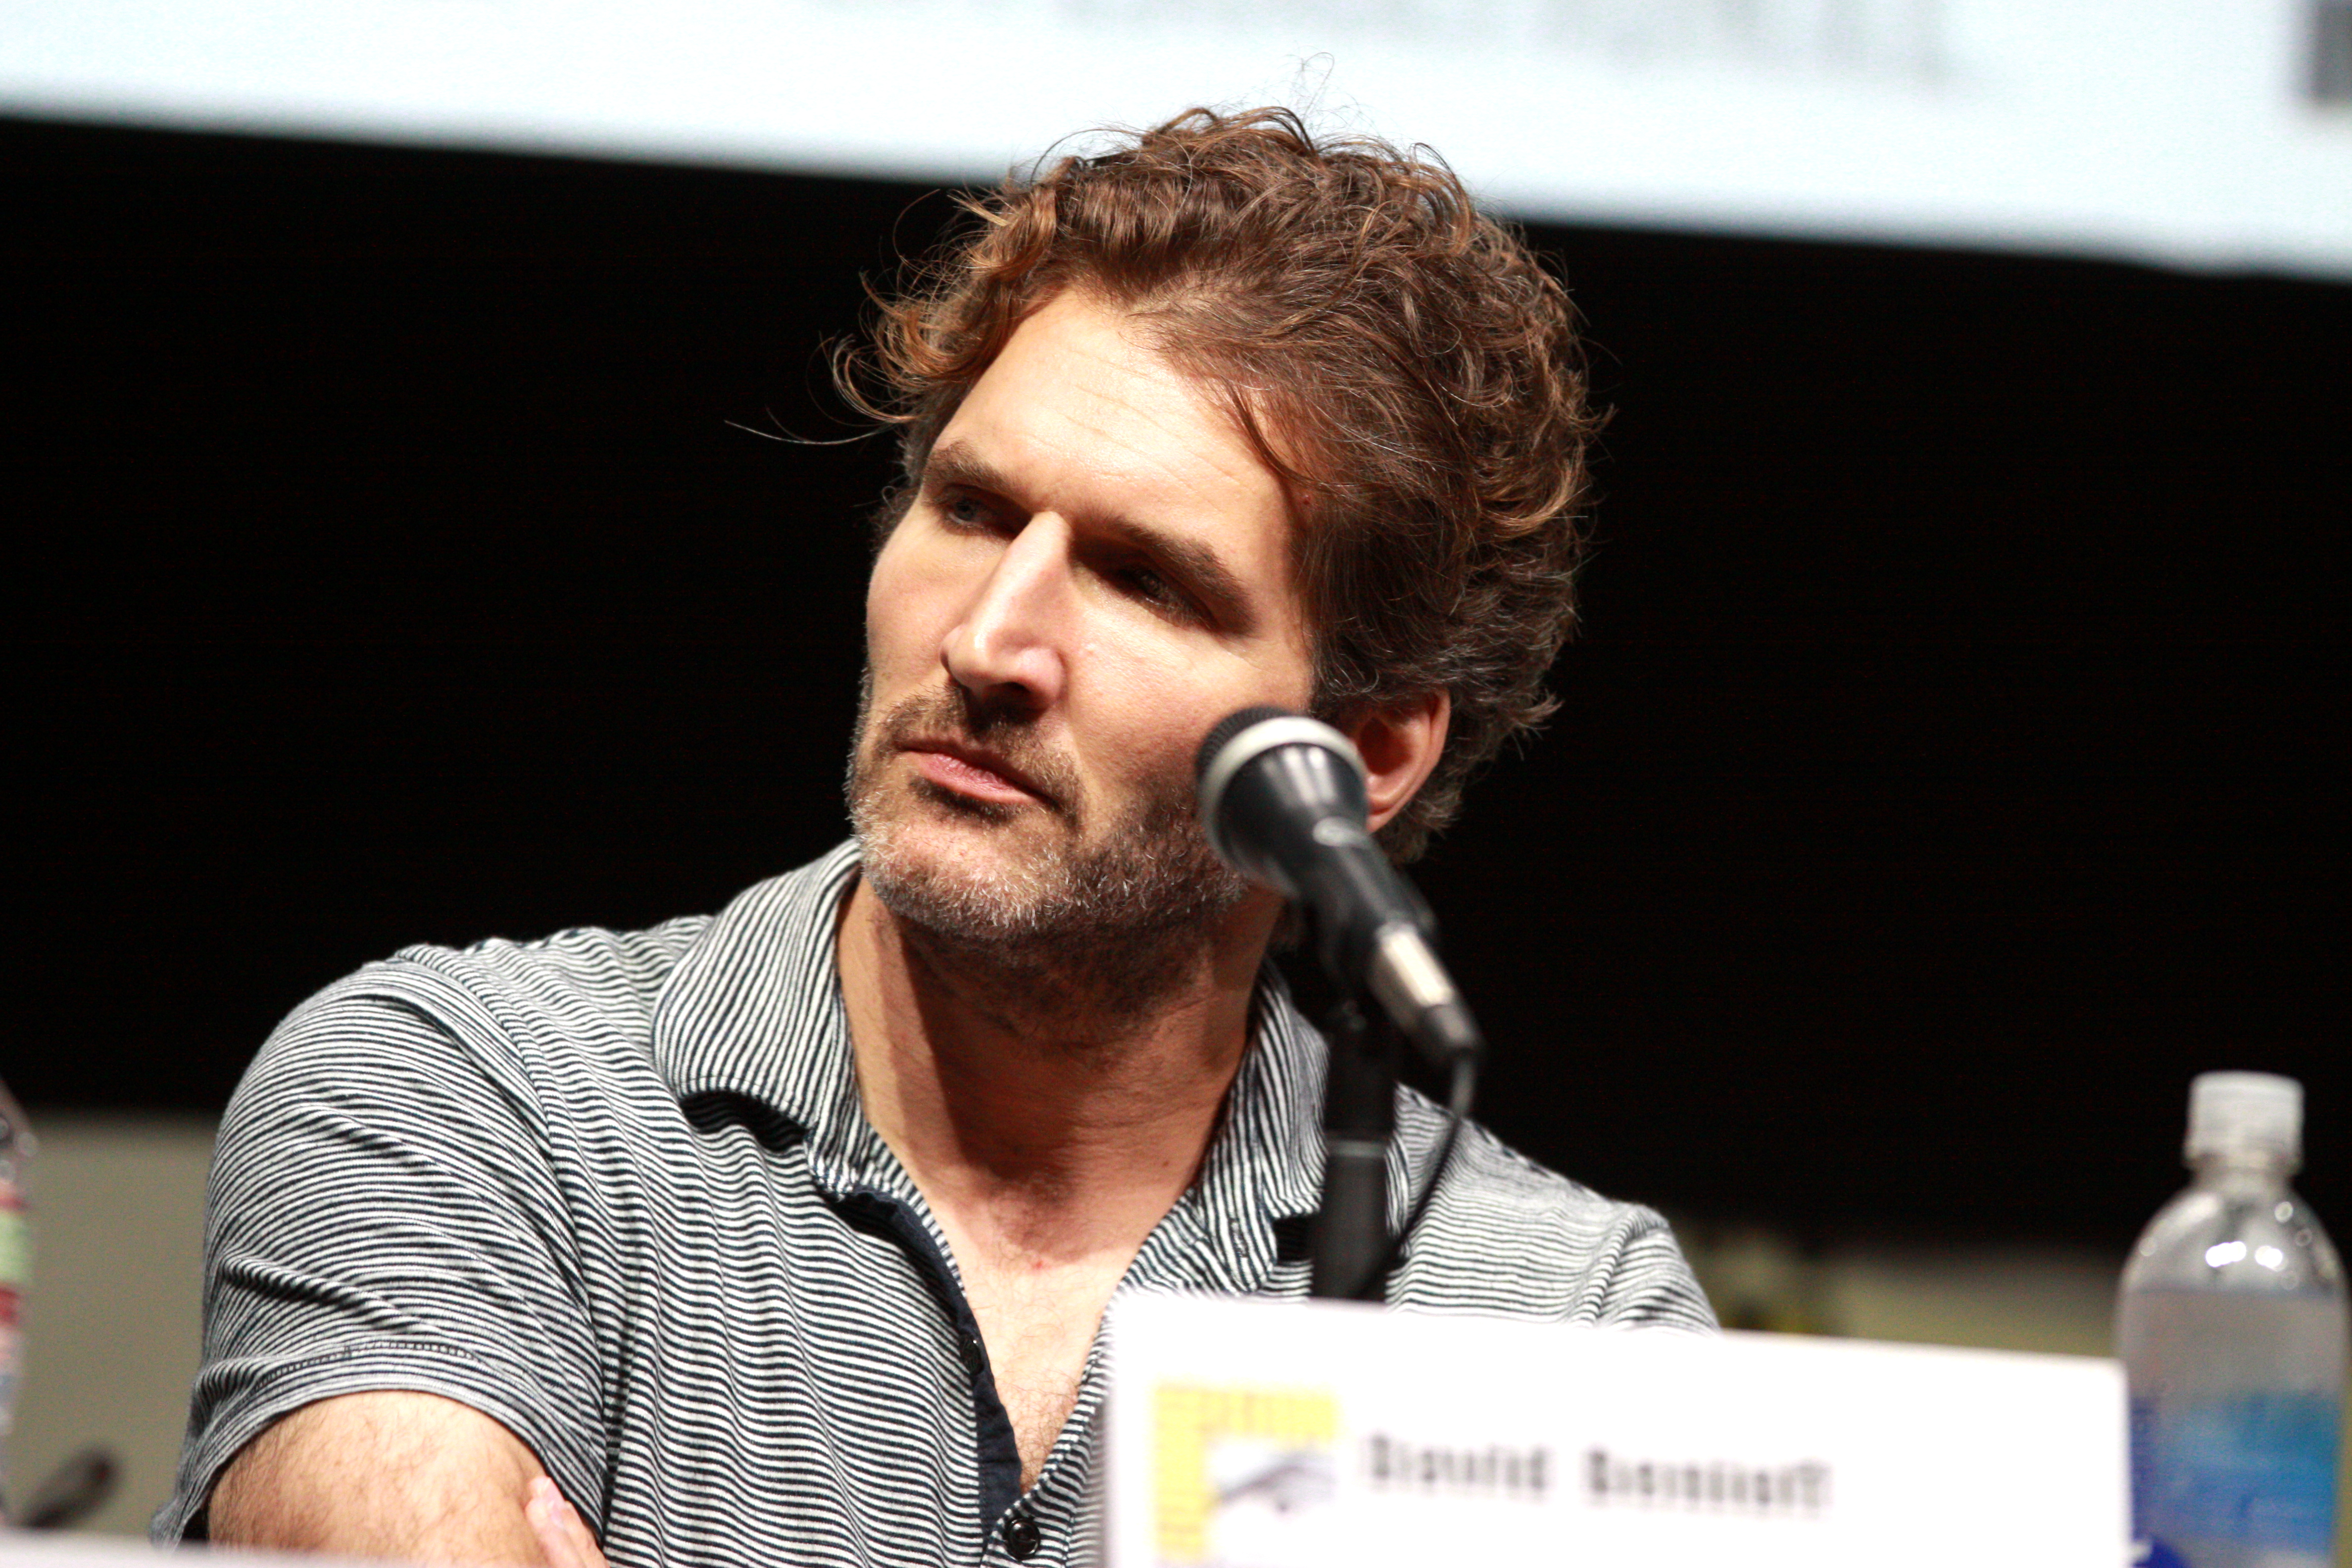 characterization in the affairs of each beast by david benioff